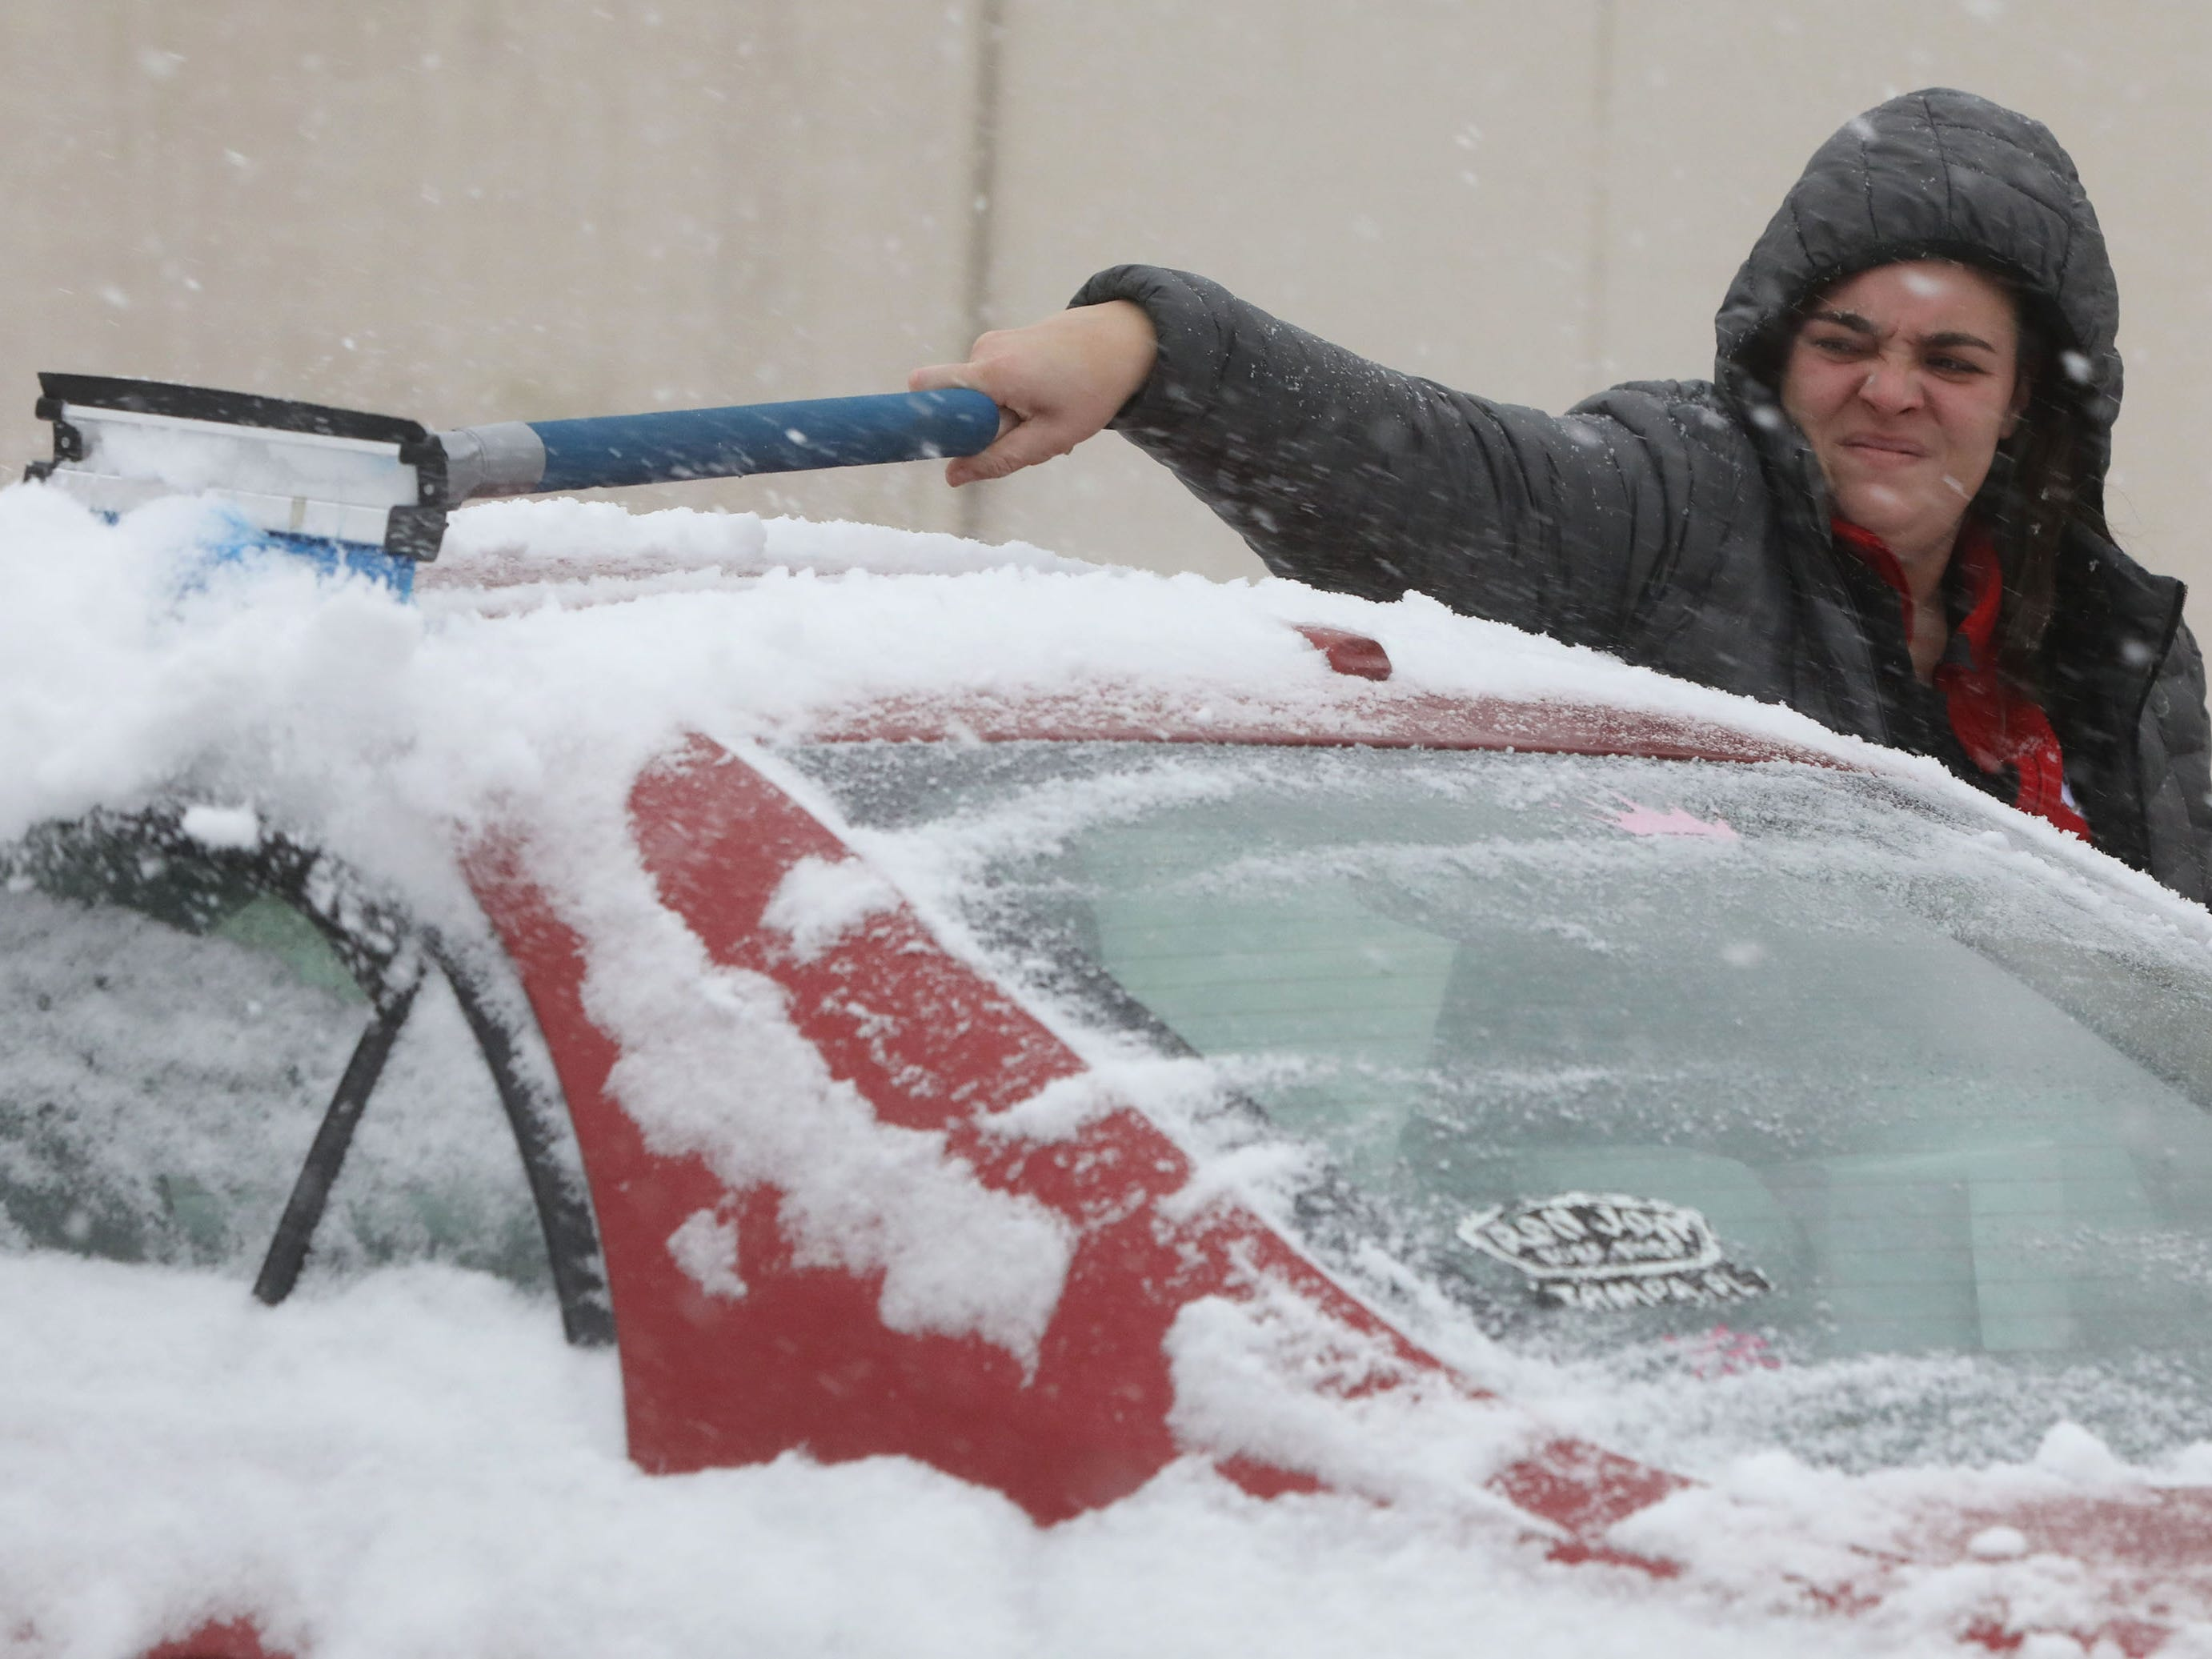 Kassie Mattoon clears snow from her car as she heads home from work in Totowa, N.J.